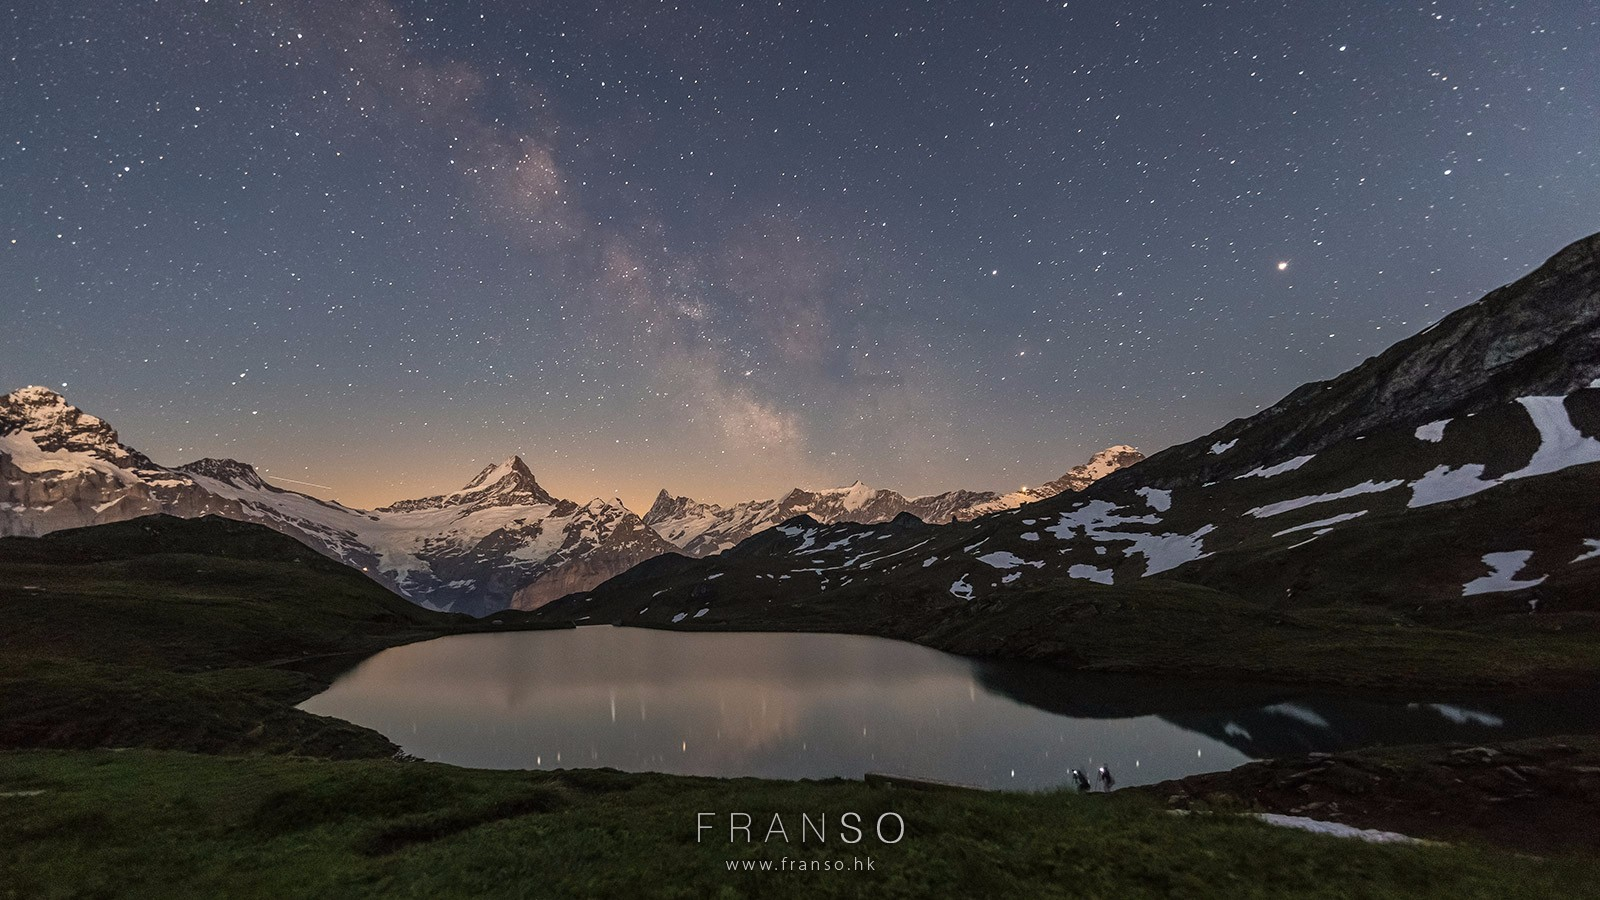 Starscape and Milkyway |  | After sunset | Bachalpsee, Berner Oberland, Switzerland